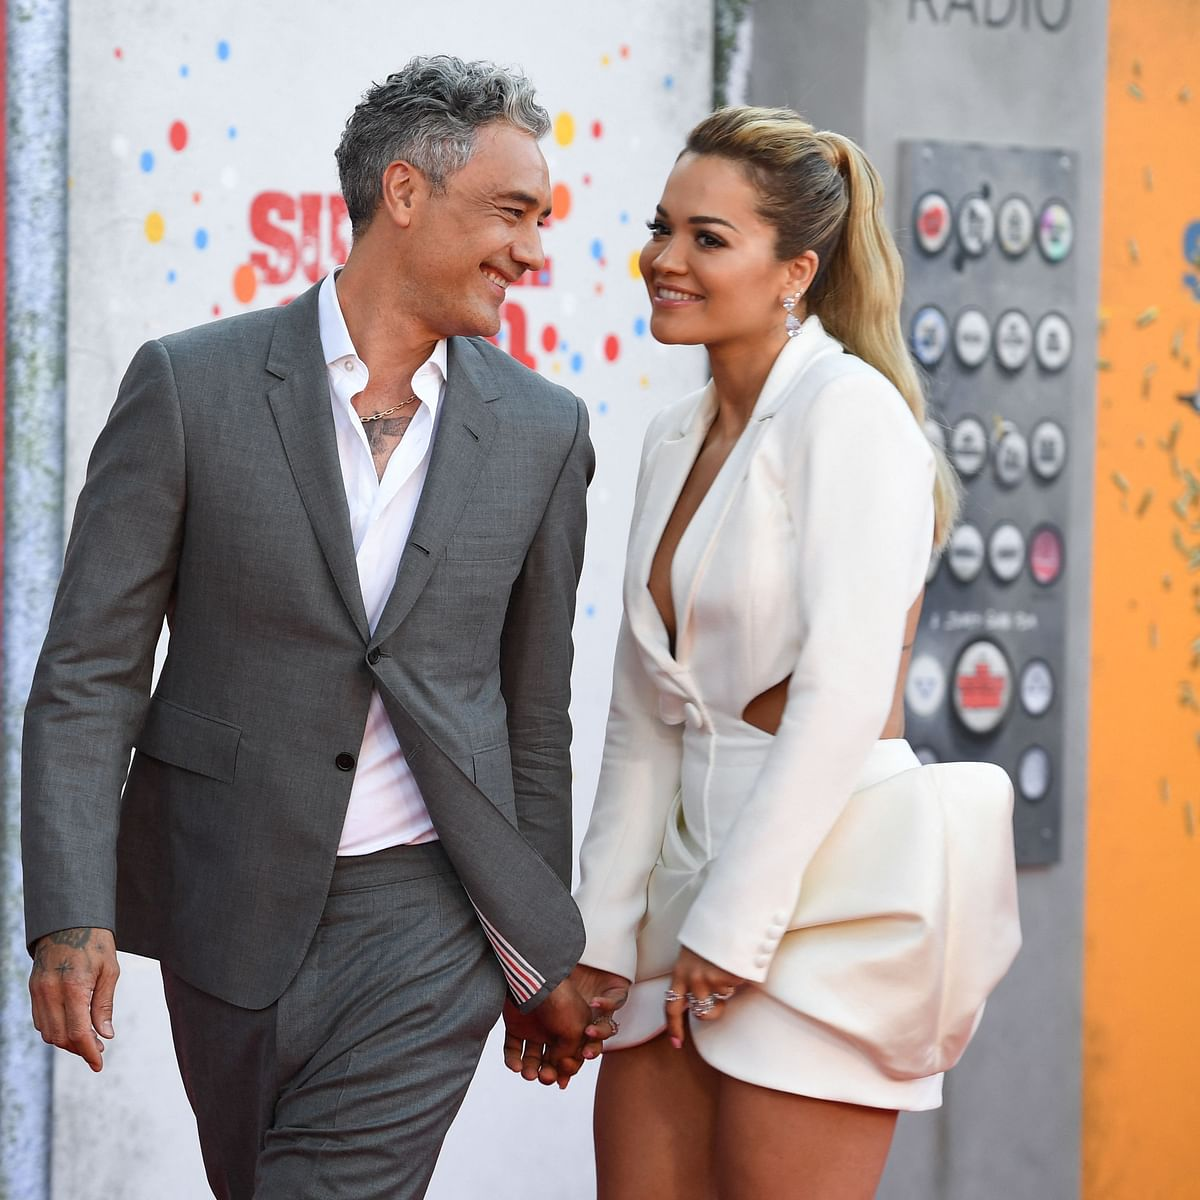 Rita Ora, Taika Waititi make their romance official; check out PDA at 'Suicide Squad 2' premiere